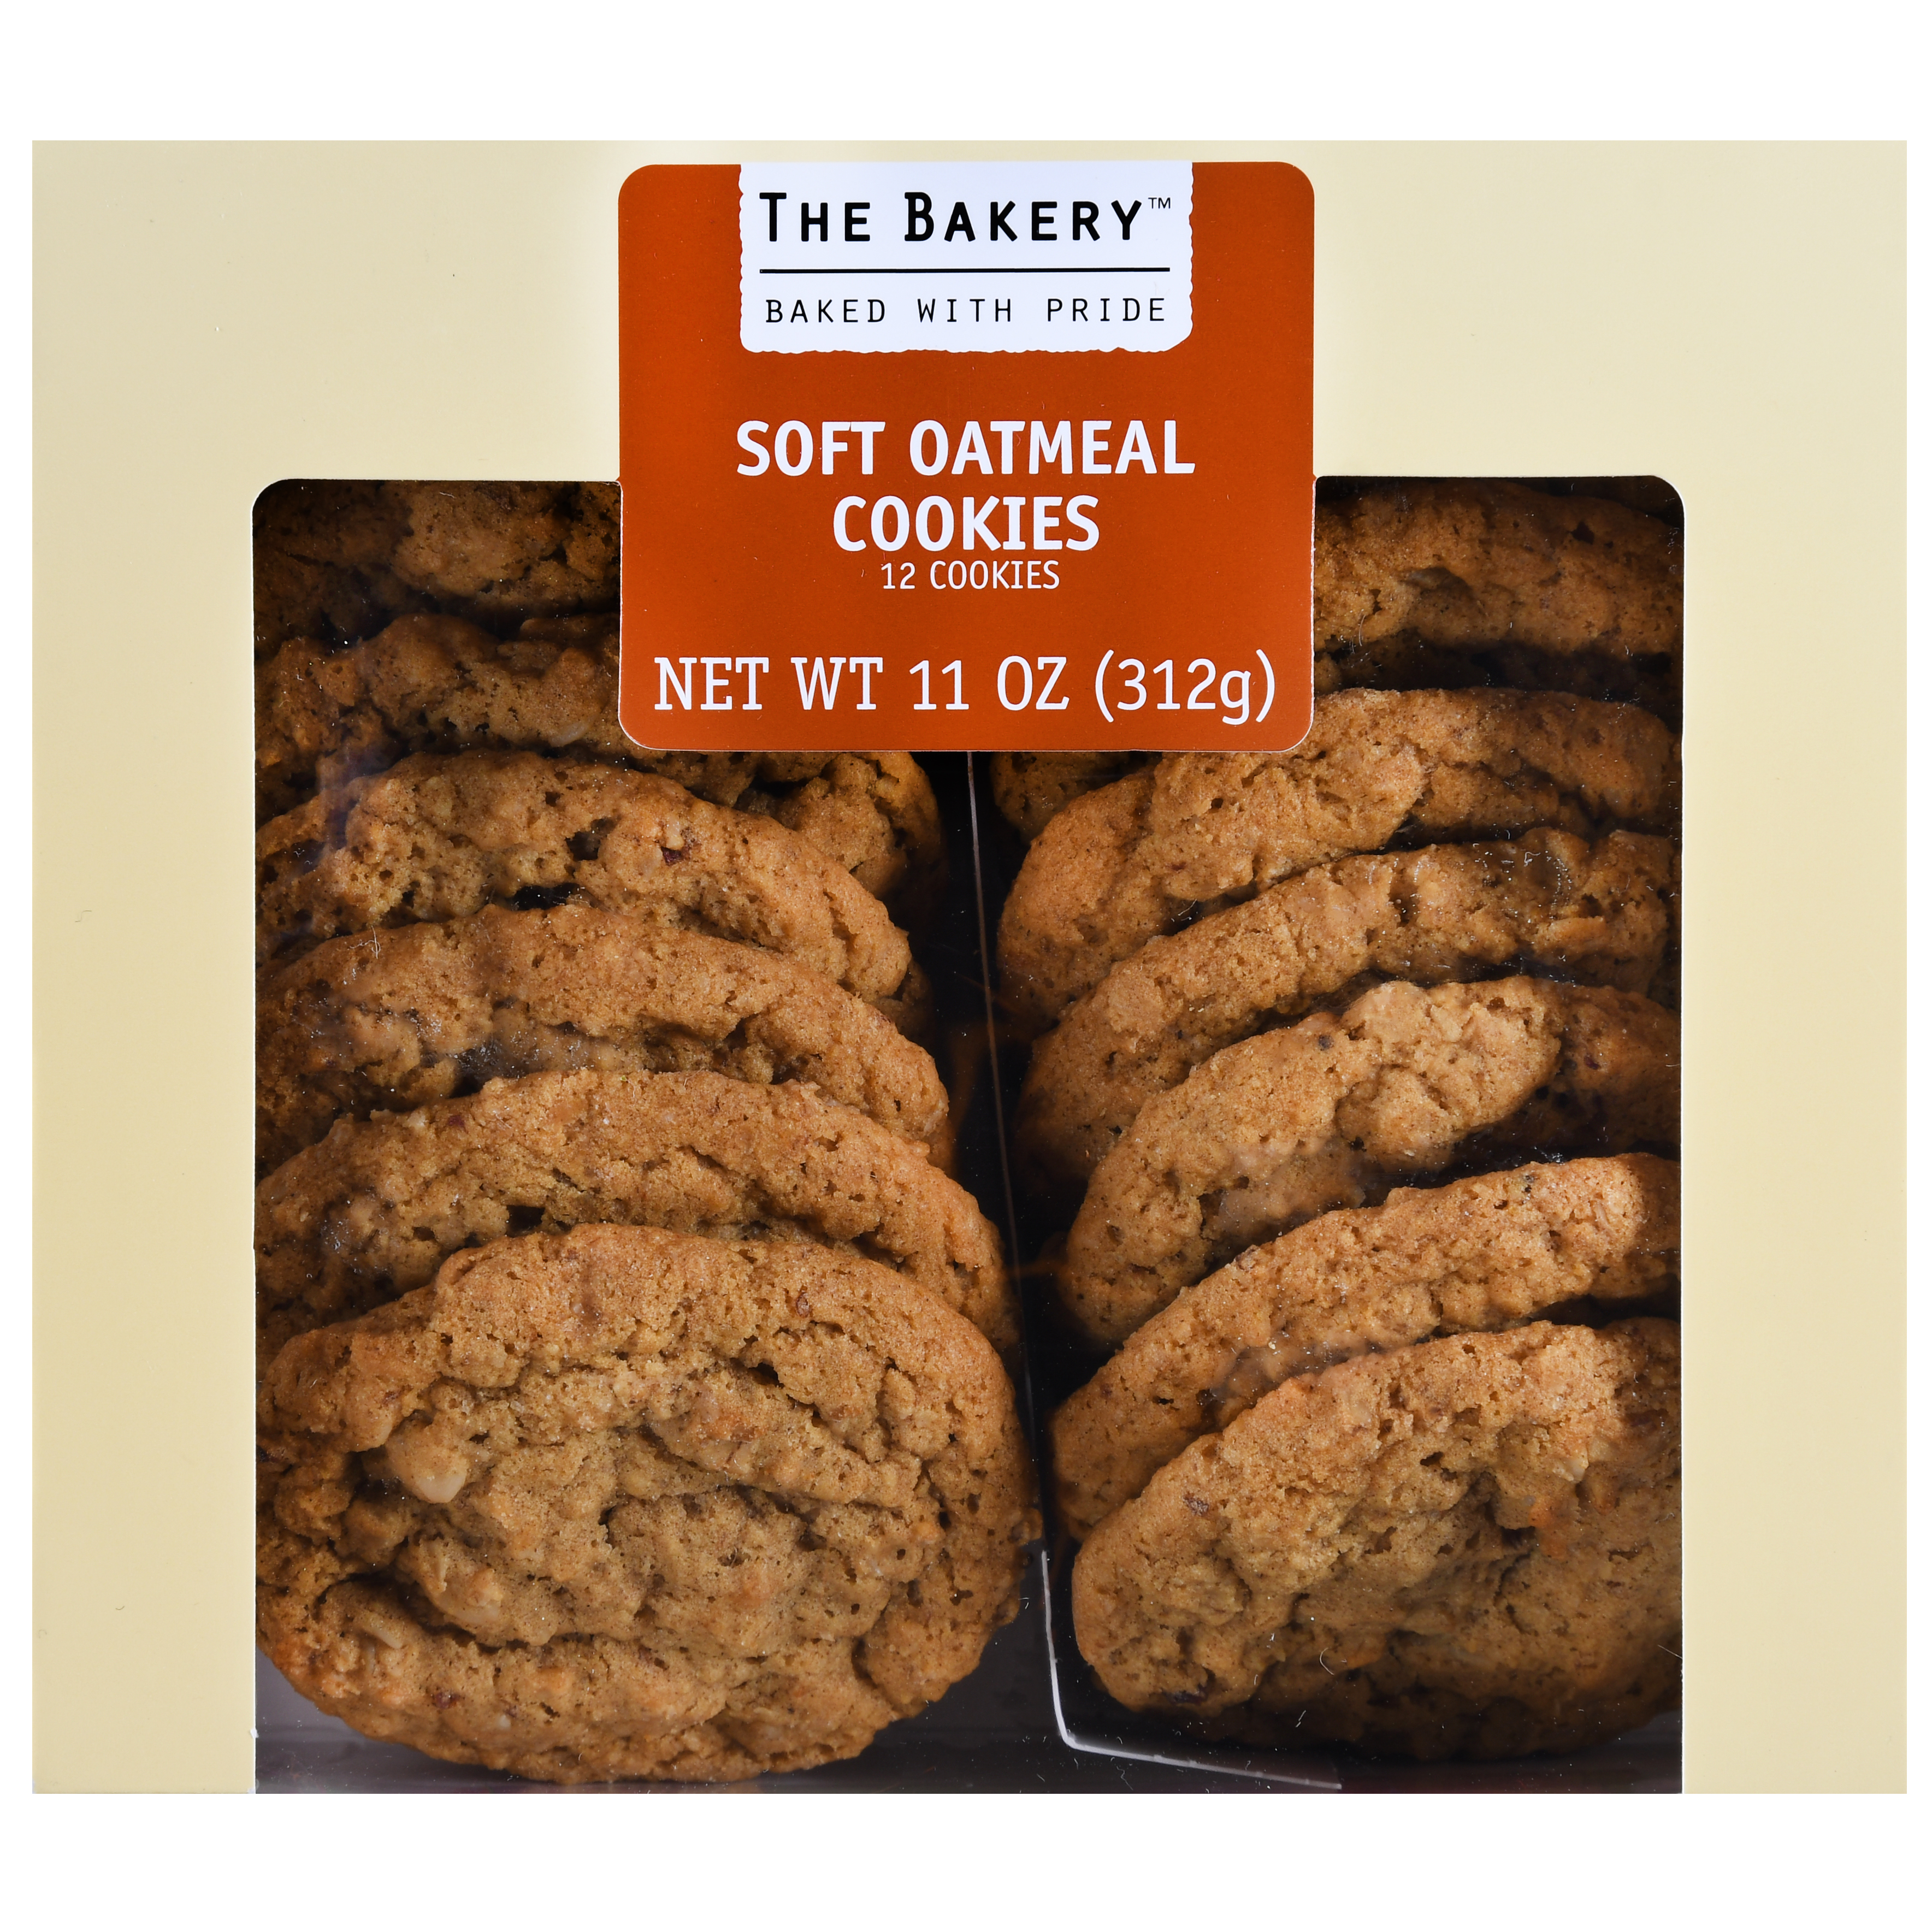 The Bakery At Walmart Soft Oatmeal Cookies, 11 oz